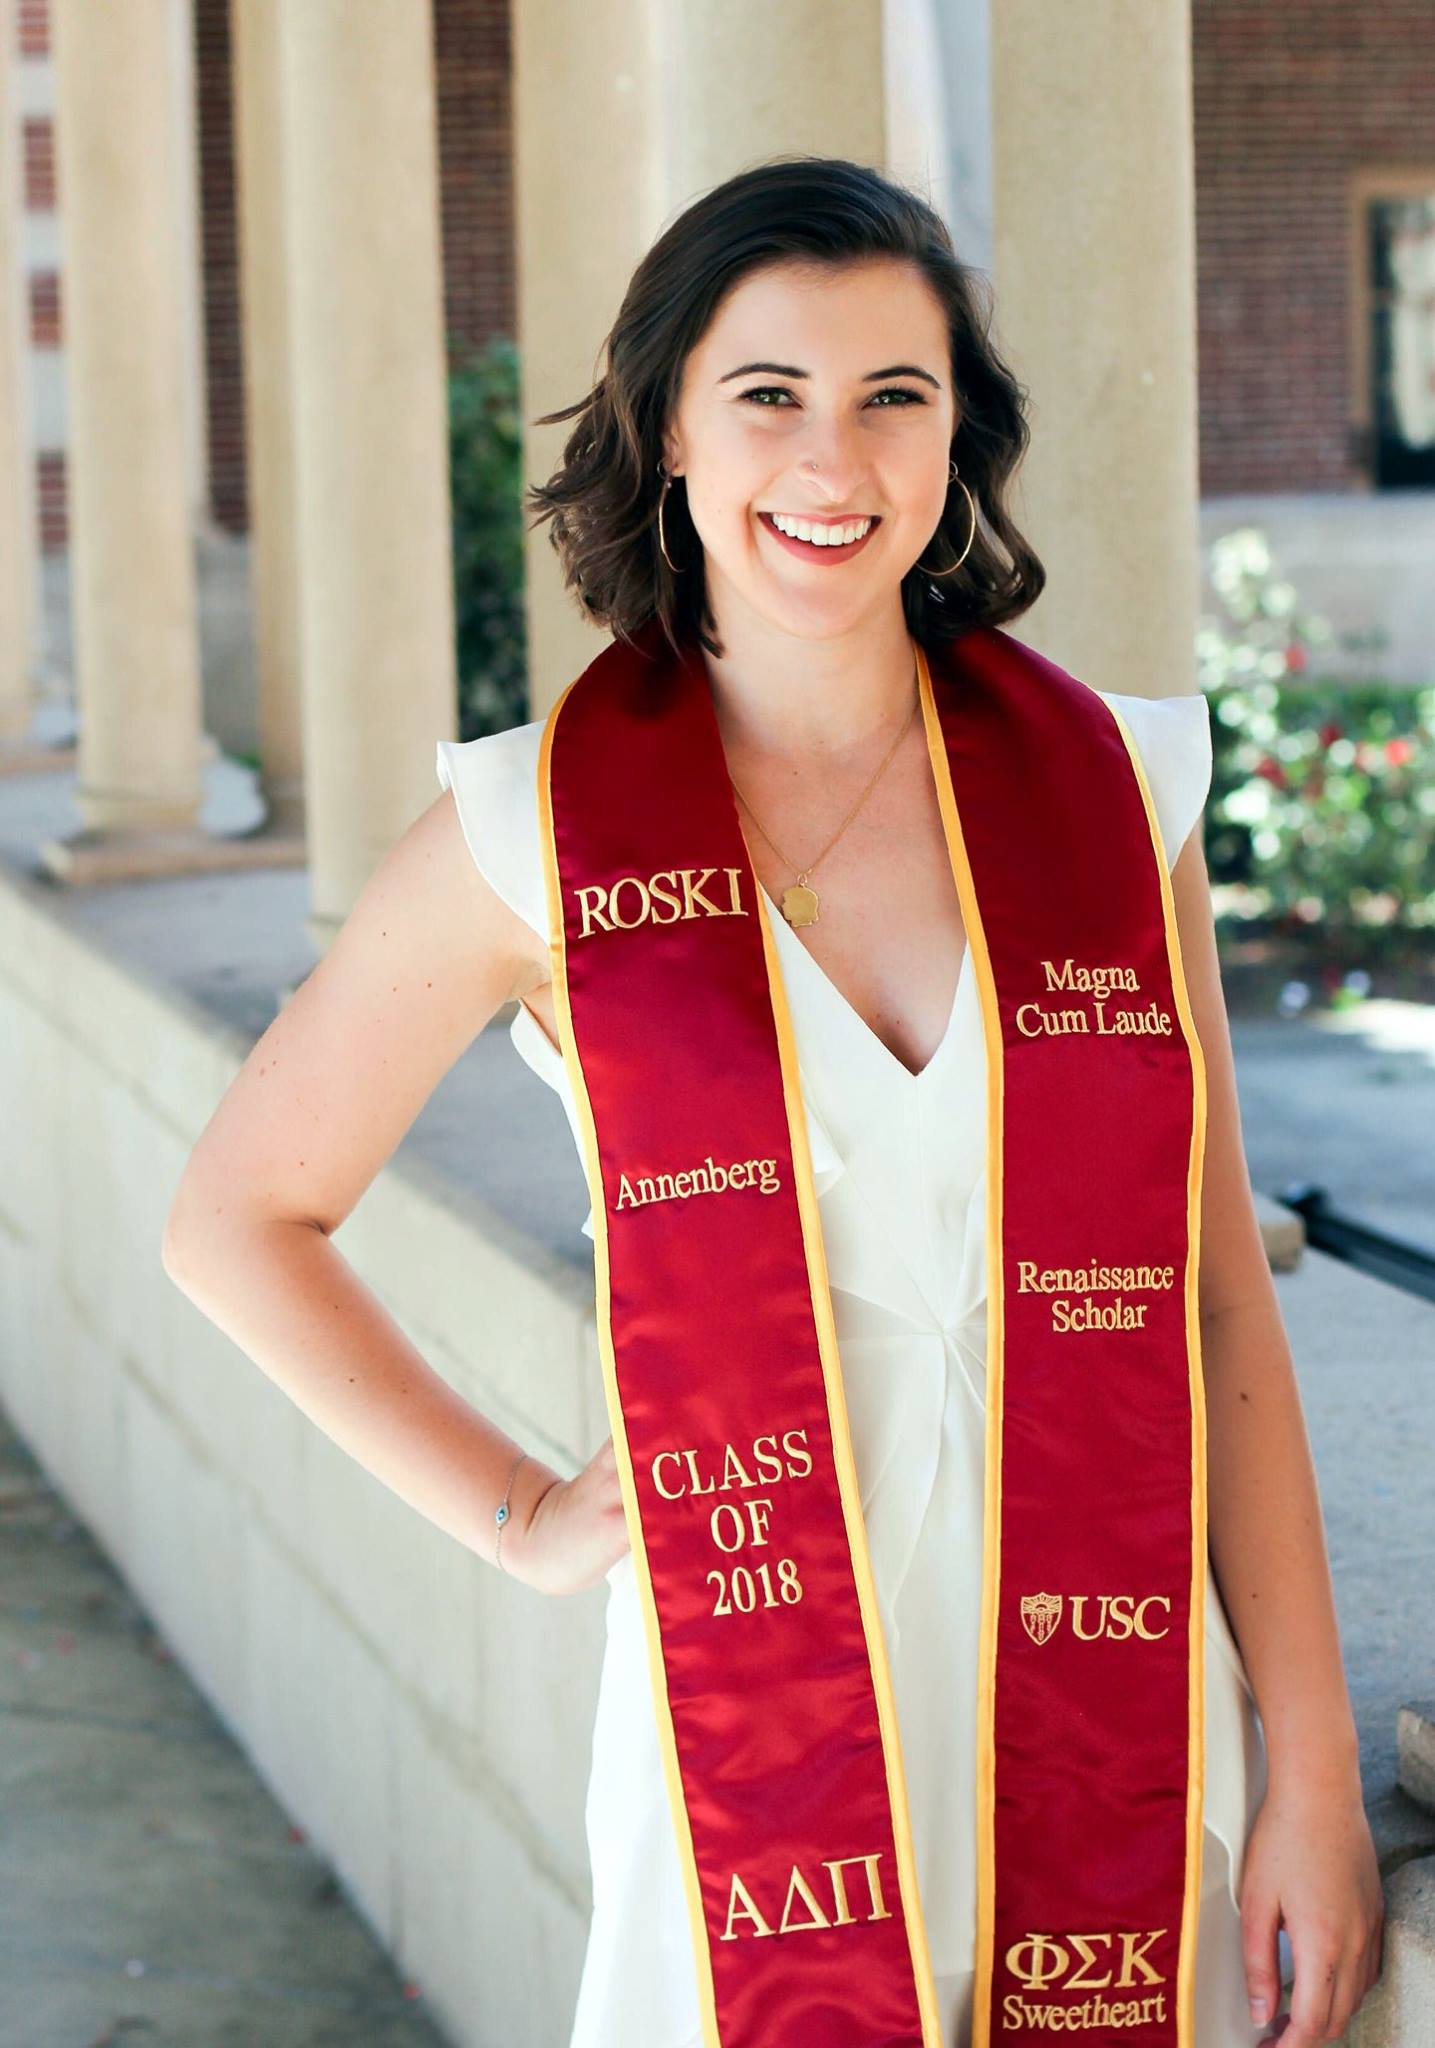 Chloe Moissis - Why Did You Join ADPi?I always felt so welcomed immediately at ADPi, and USC is such a big school, it was nice to find a place that felt like home.How Did ADPi Impact Your Time At USC?I was constantly inspired by what my sisters were doing, that I was pushed to work harder myself. I also learned about so many opportunities and tried so many things i never would have even heard about without my sisters. And of course it was great to have a group to goof around with when we weren't working too.What Are Your Post Grad Plans?I currently work at Sony Pictures as a graphic designer in the Digital Marketing department and plan to continuing designing in the entertainment industry.How Will You Stay Connected With ADPI Post Graduation?I plan to live with sisters and keep up through social media and try to see as many as I can after work! And at work, as there are some ADPis at Sony Pictures too!